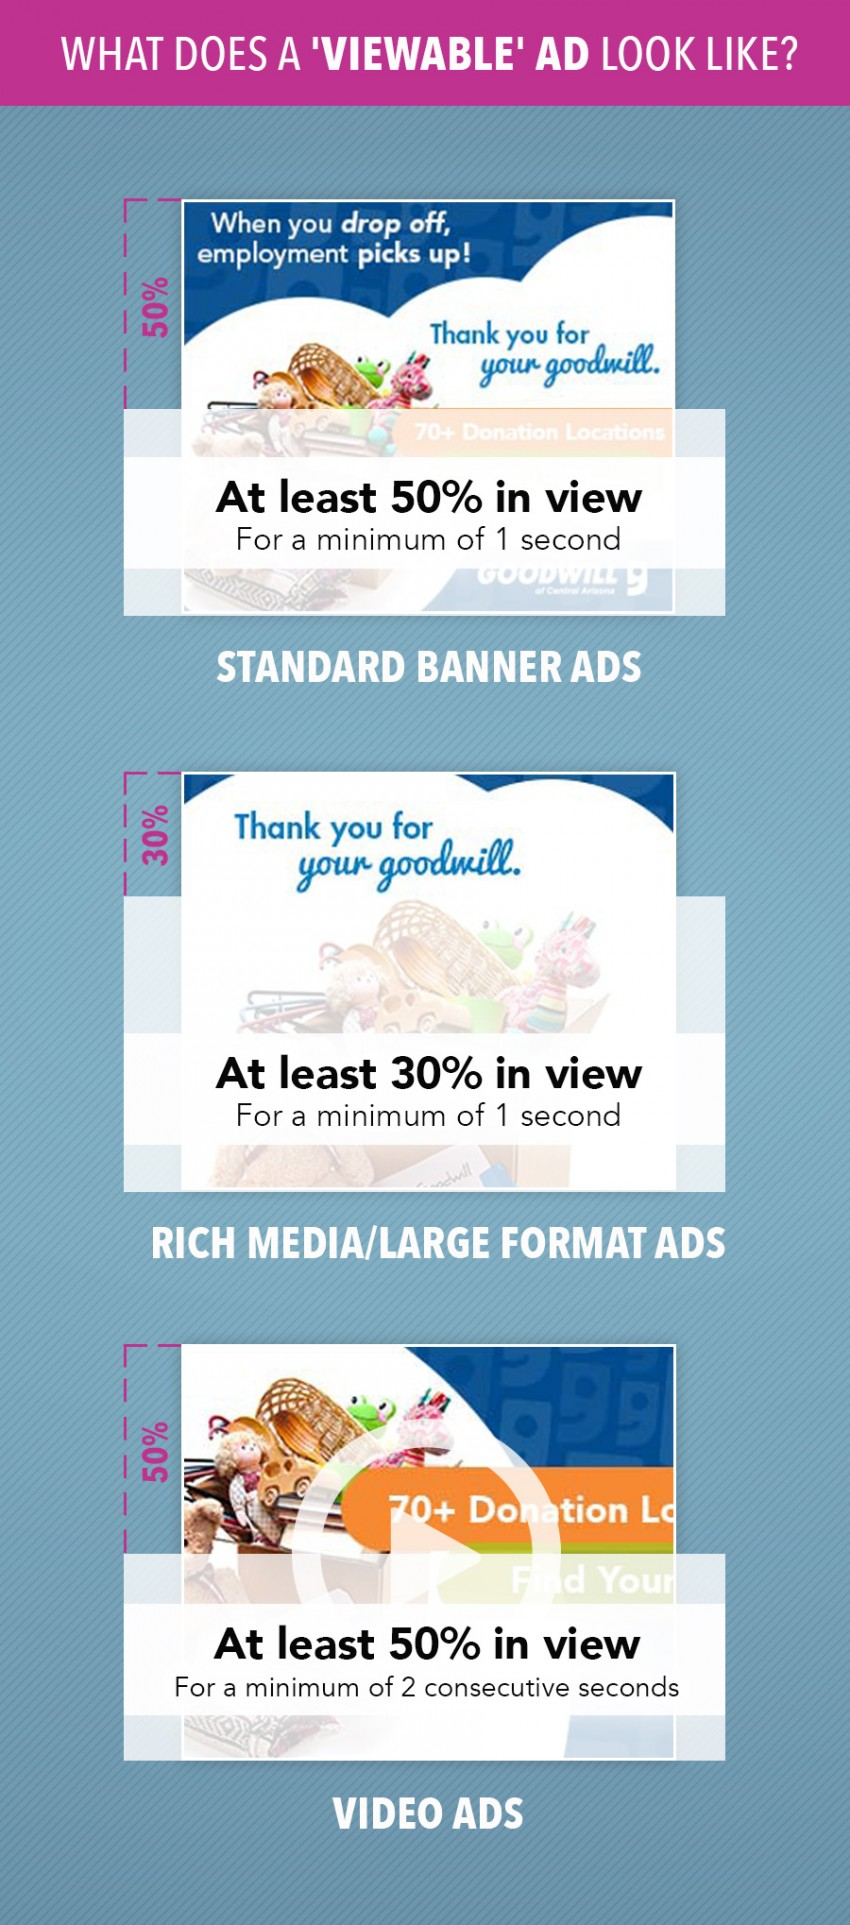 what viewable ads look like